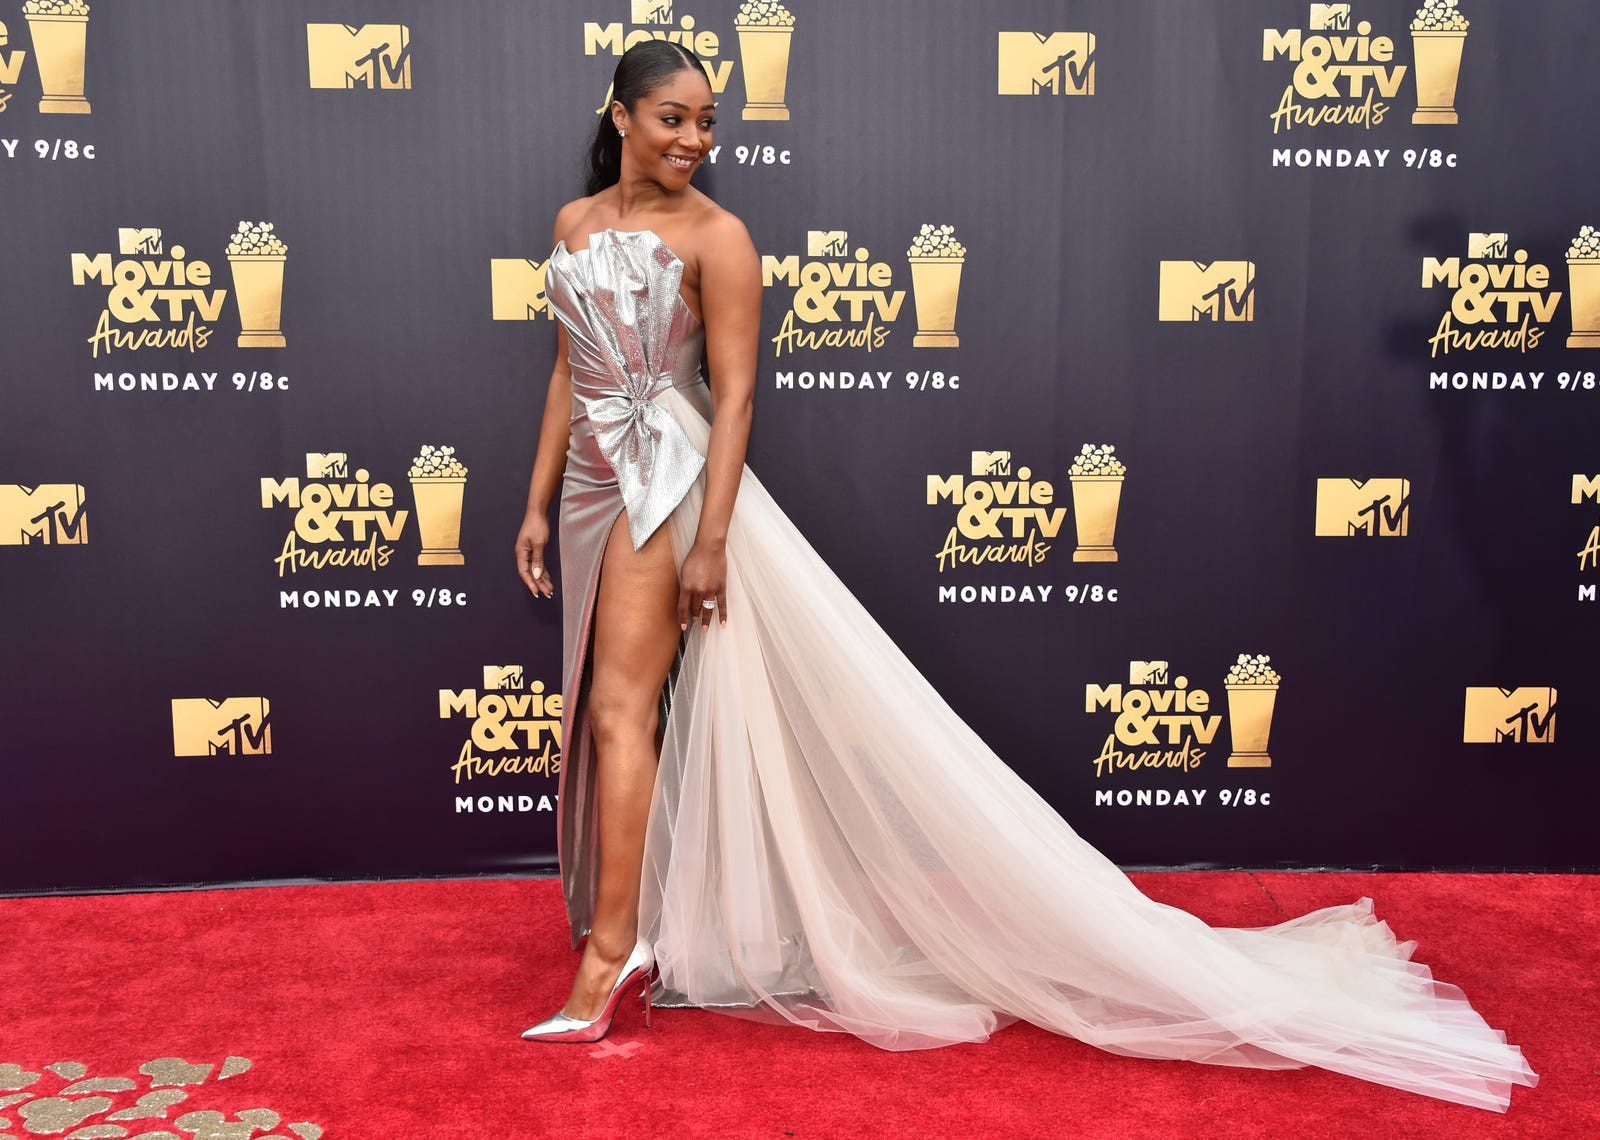 She ready: Haddish hits the red carpet looking stunning in silver.